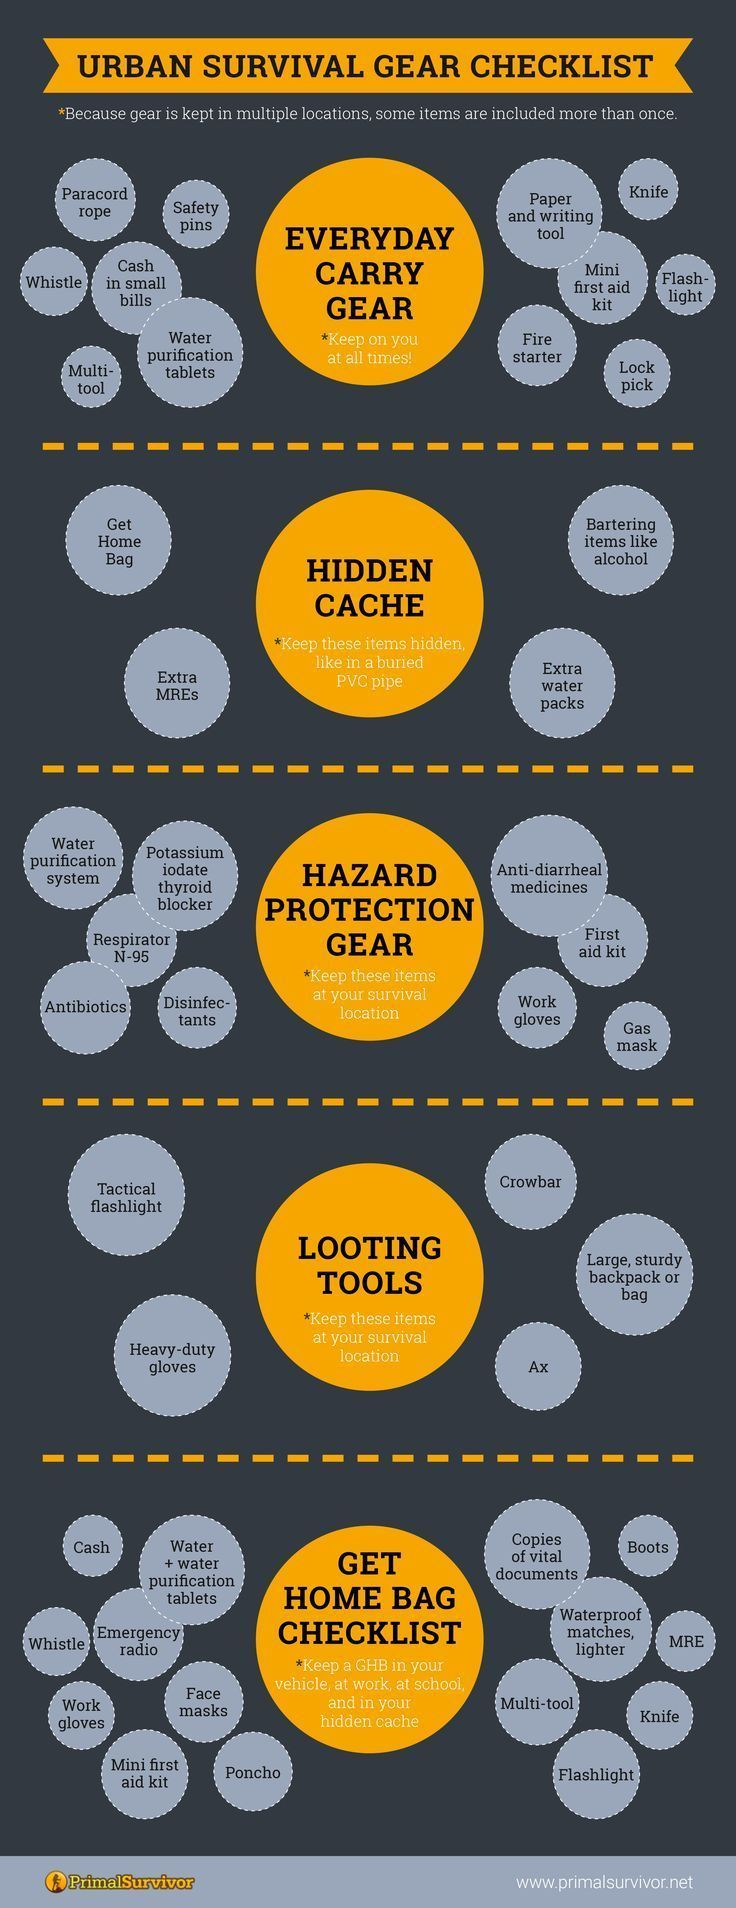 Urban Survival Gear Checklist #urbansurvival #emergencypreparedness #shtf #survivalgear